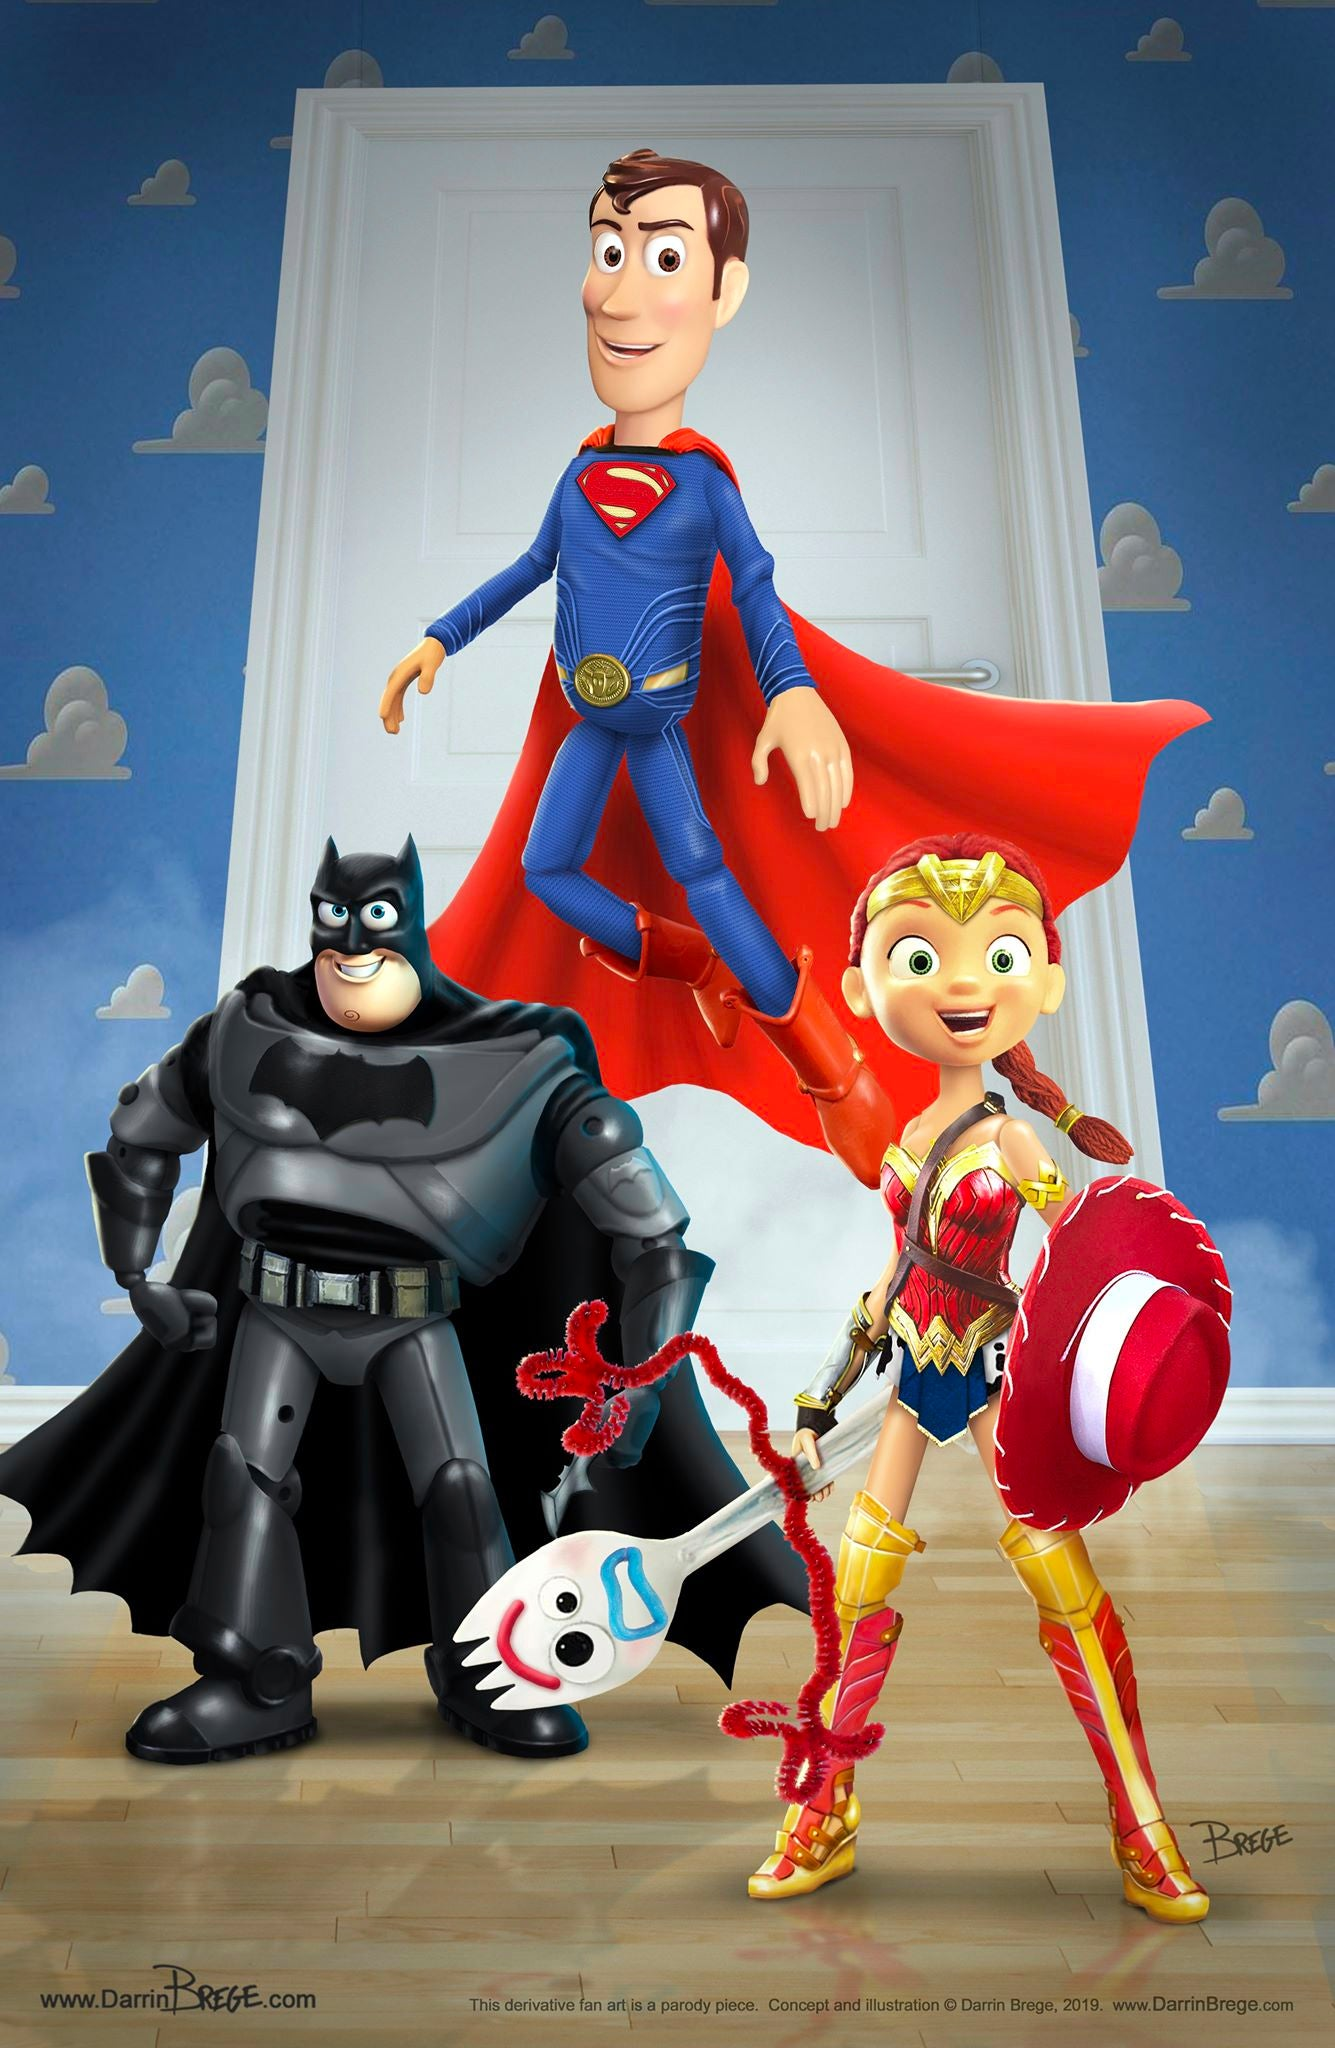 Fan Mashup Merges Toy Story 4 and Justice League Characters